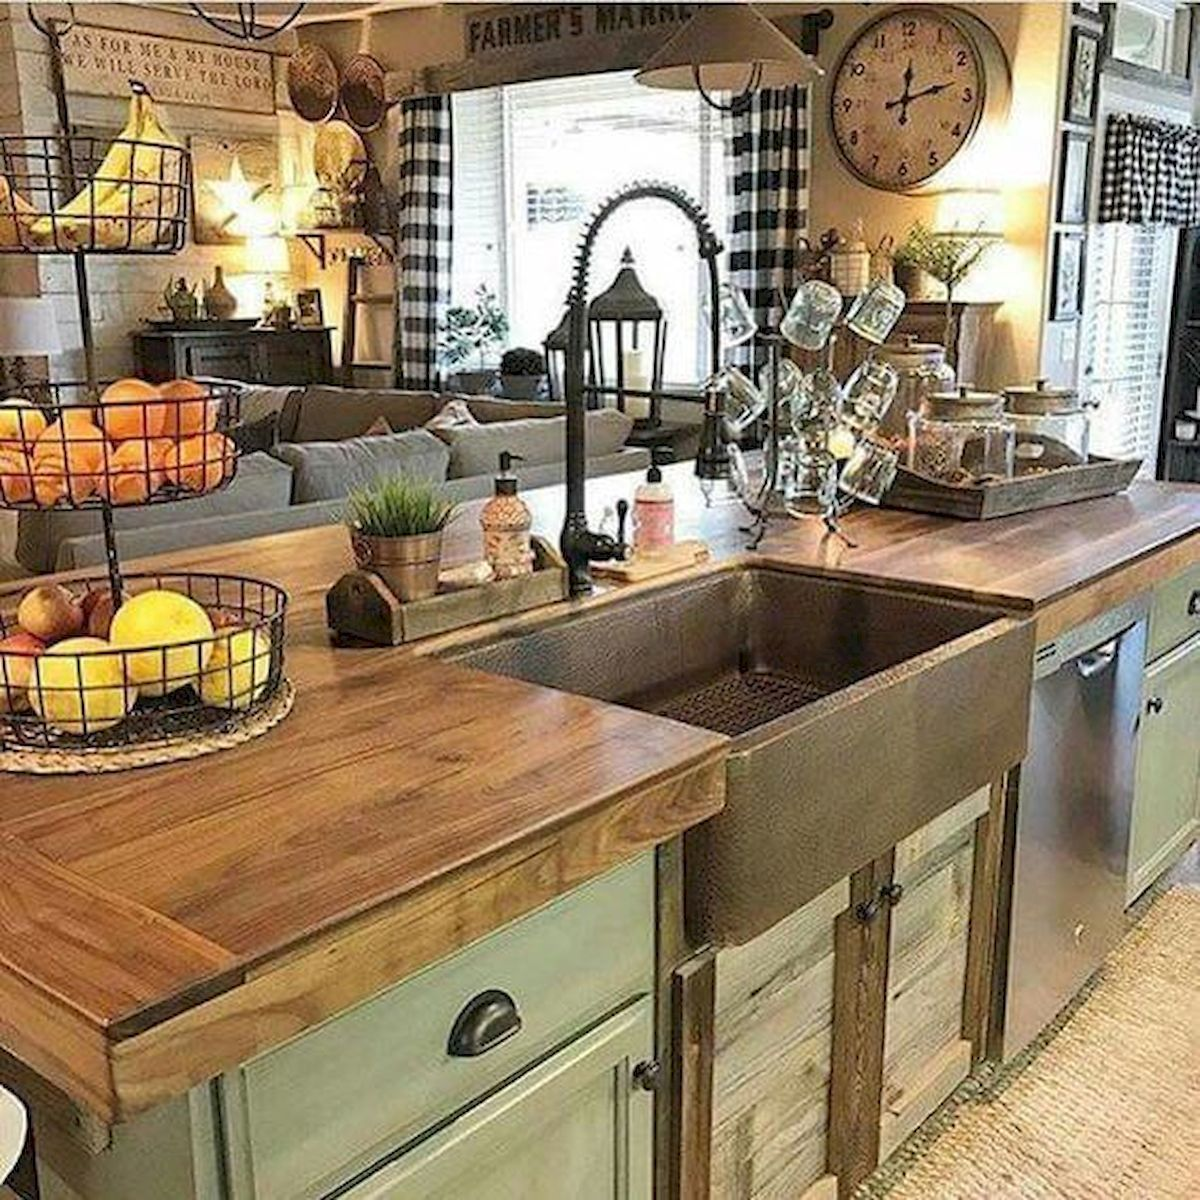 60 Great Farmhouse Kitchen Countertops Design Ideas And ... on country kitchen white ideas, country kitchen wall ideas, country kitchen island with cooktop, small kitchen dining room design ideas, country kitchen with shelves, small cabin kitchen design ideas, granite countertops kitchen ideas, dutch country kitchen ideas, country faucet ideas, country style kitchen ideas, country bathtub ideas, inexpensive kitchen countertops ideas, country kitchen paint ideas, country kitchen appliance ideas, country kitchen garden ideas, country kitchen countertop decor, country bathroom ideas, country garage ideas, country granite kitchen, country kitchen ideas for small kitchens,